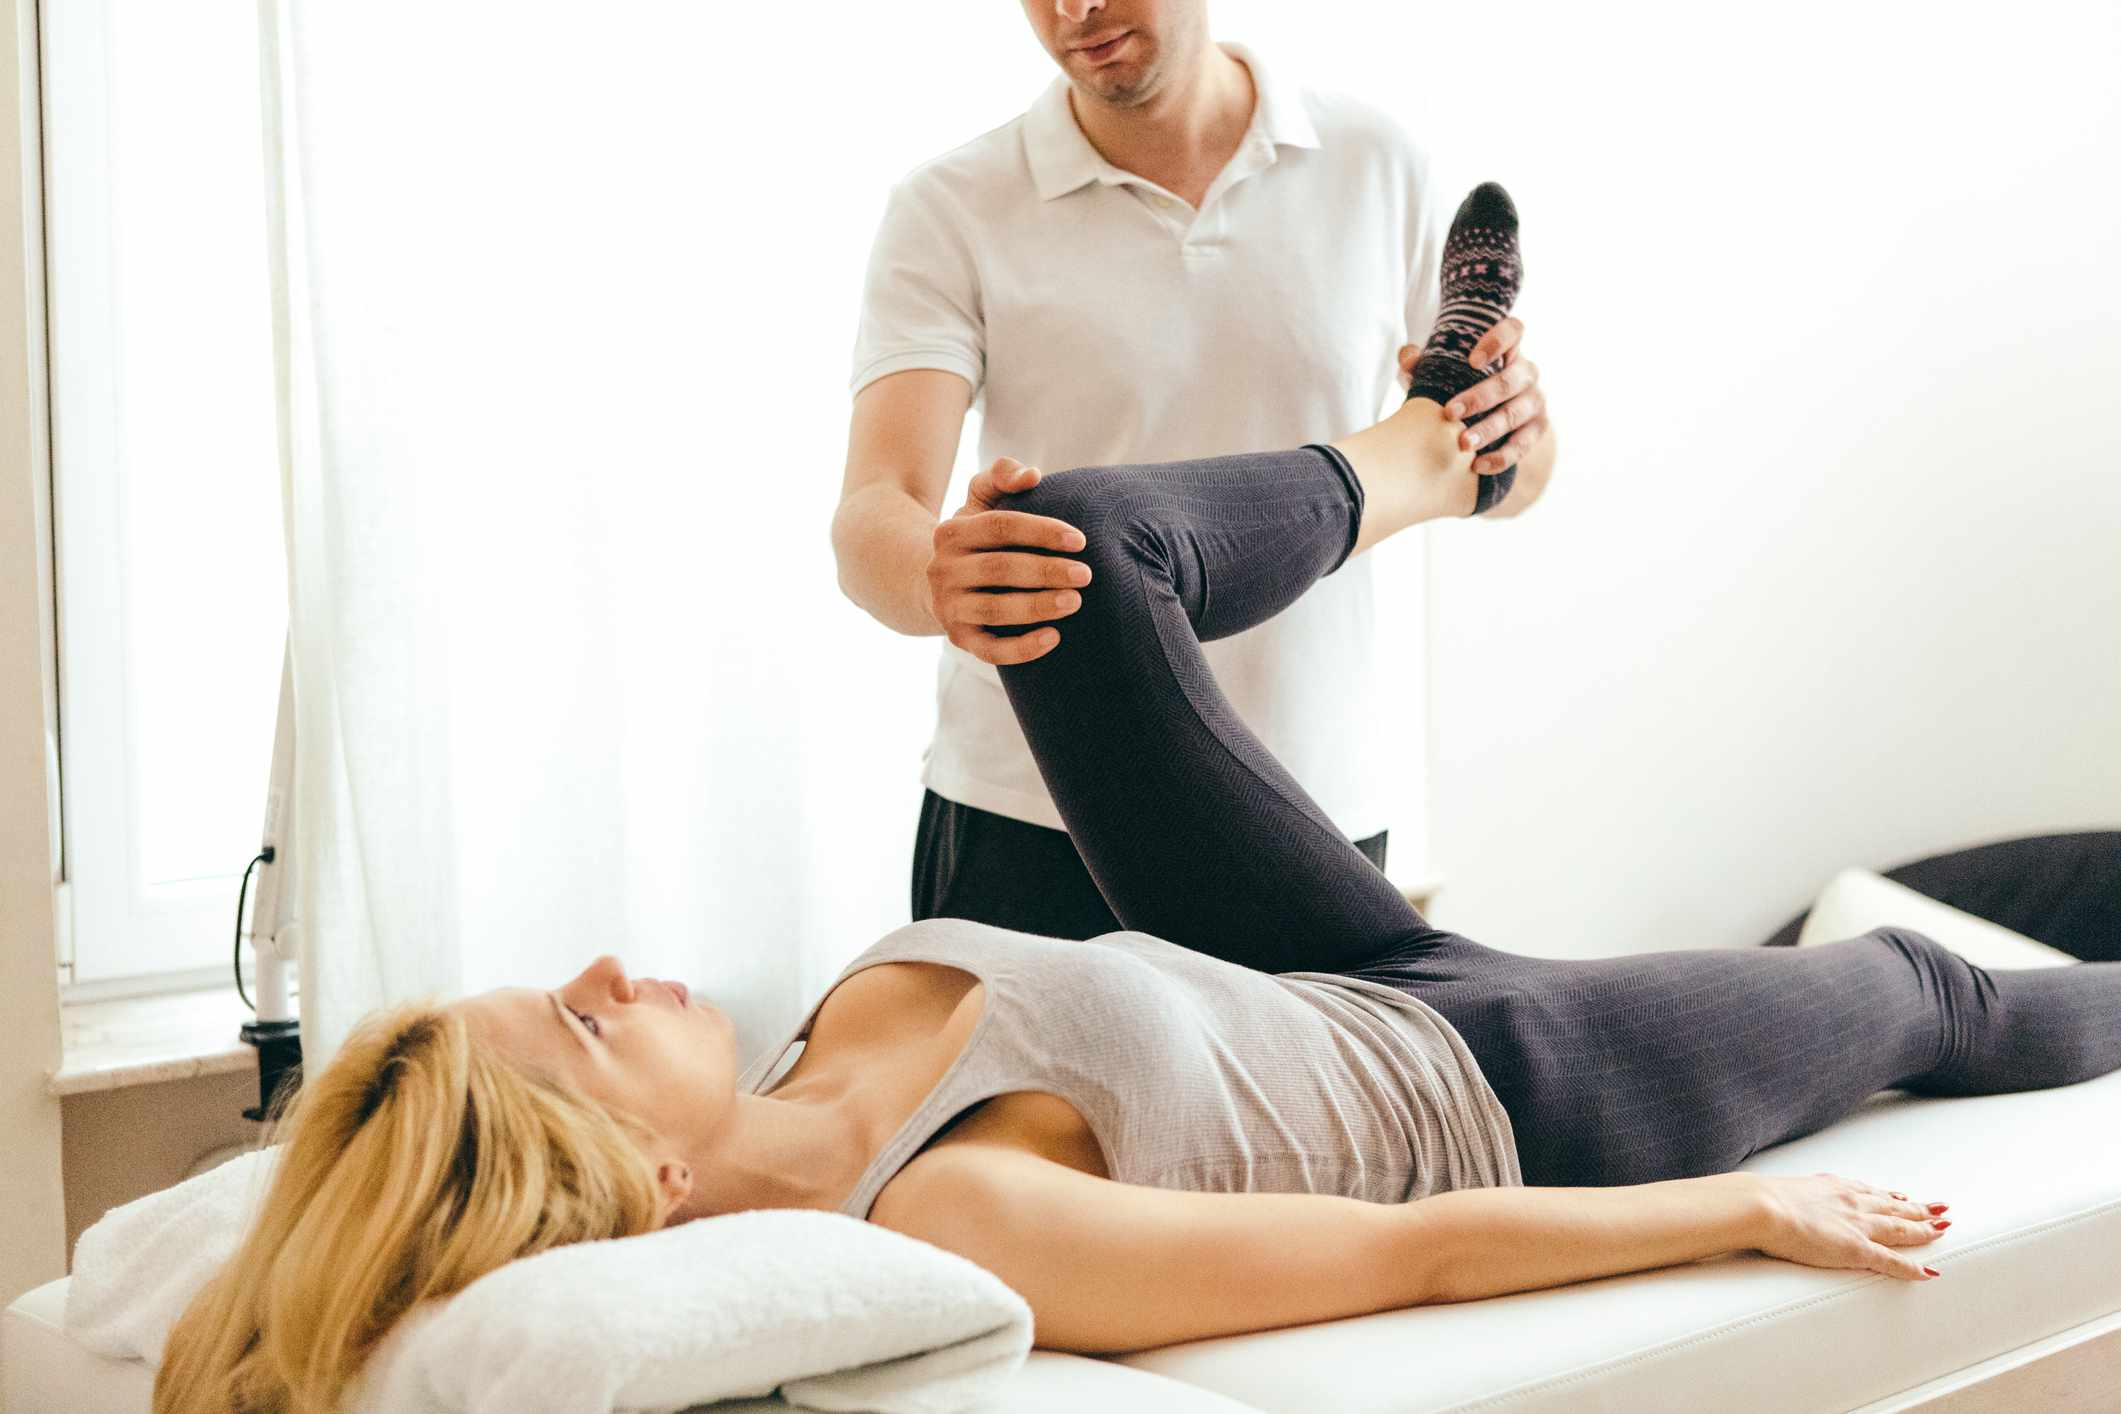 physical therapist assessing a patient's hip mobility